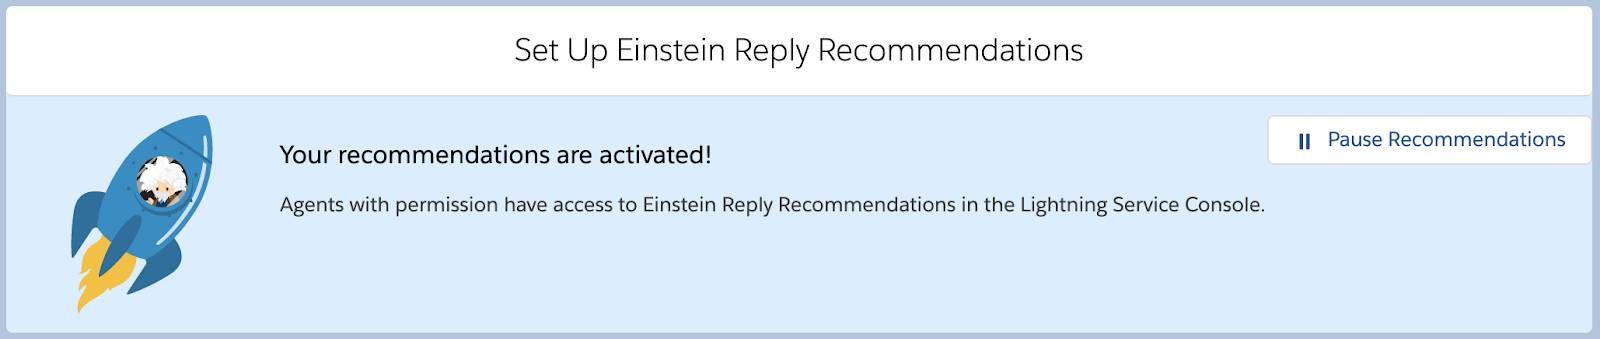 Set Up Einstein Reply Recommendations page showing confirmation of activation.